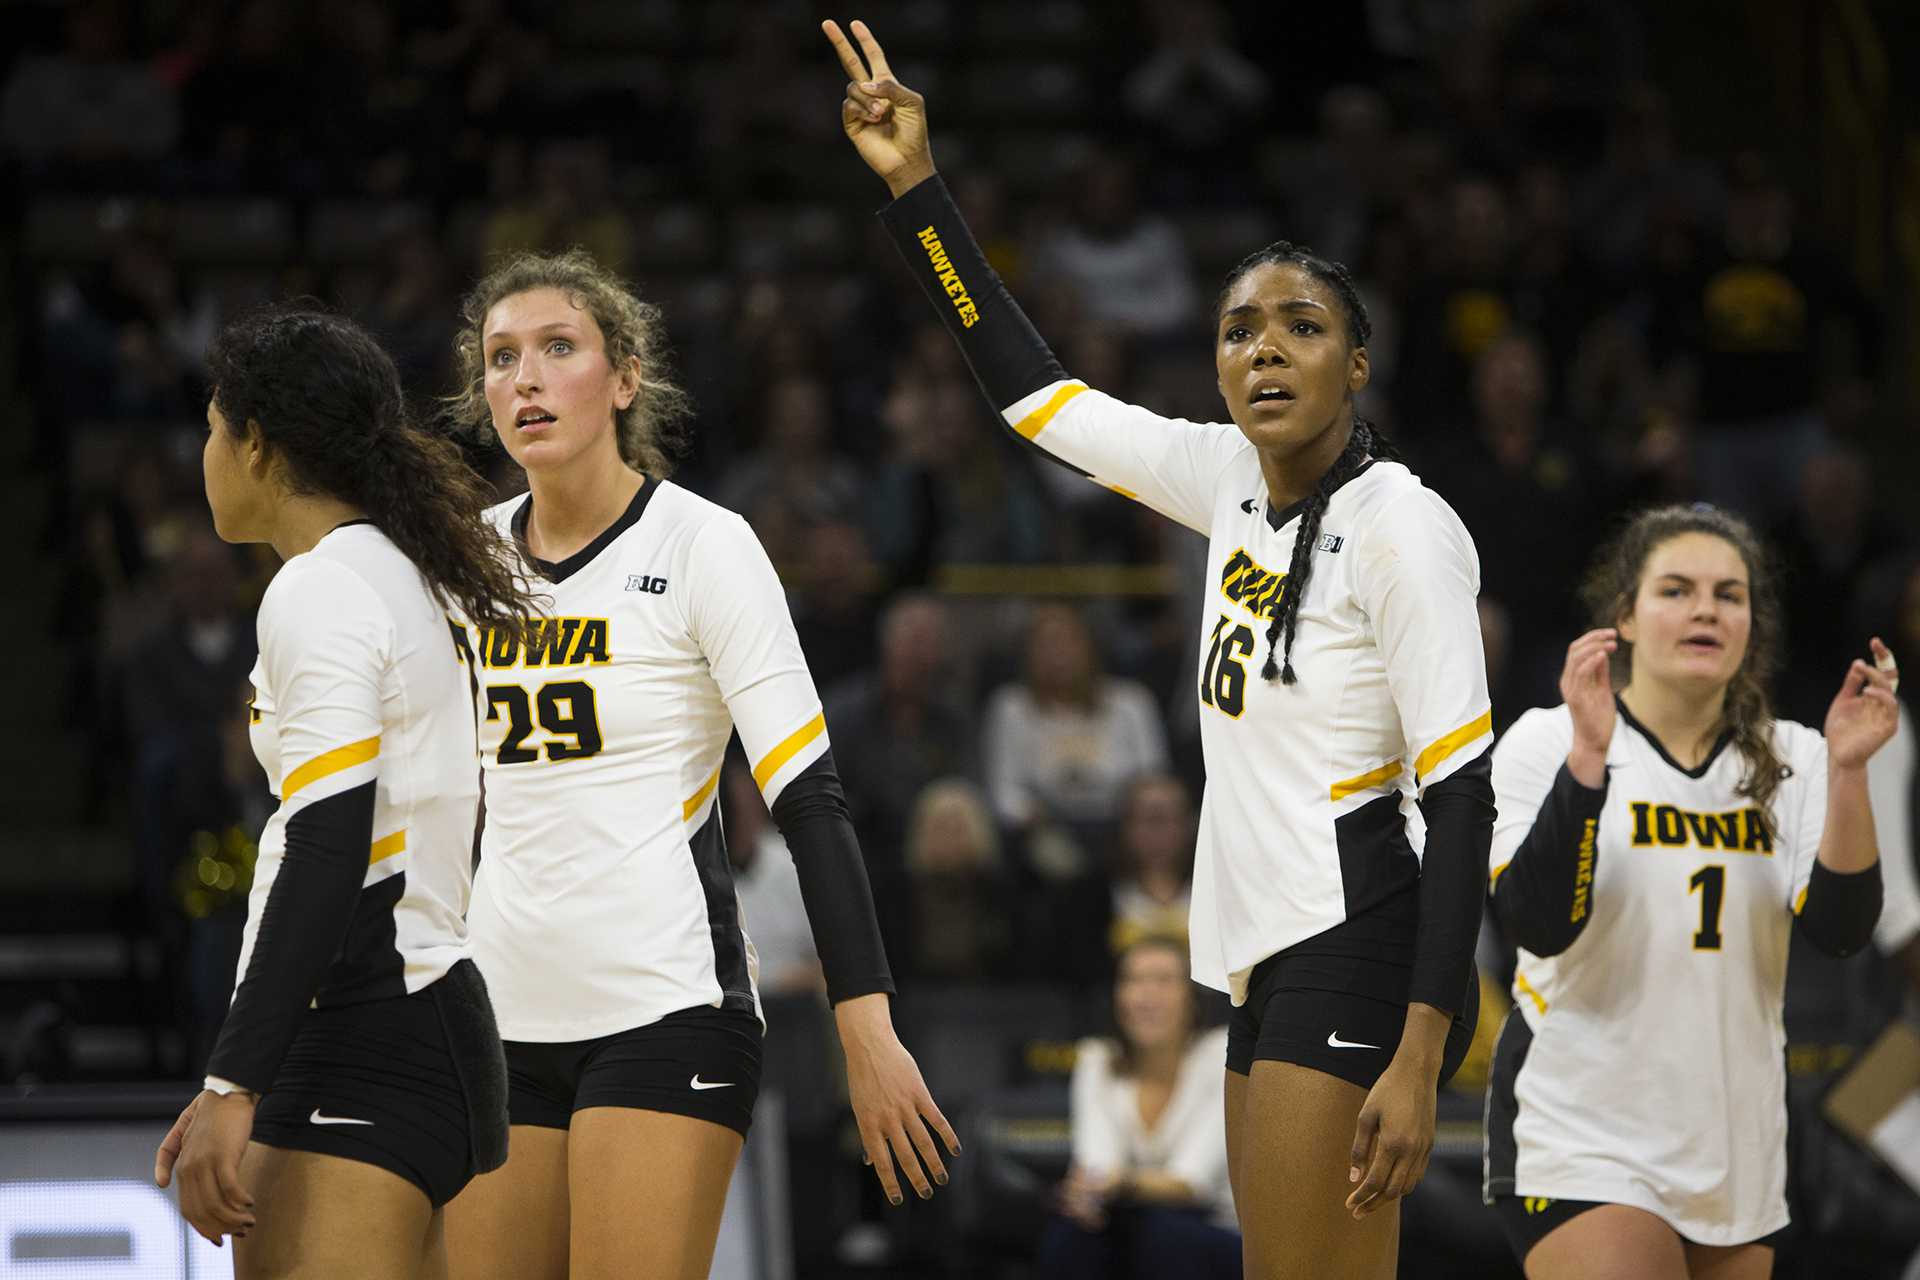 Iowa outside hitter Taylor Louis reacts to a call during an Iowa/Purdue volleyball game in Carver-Hawkeye Arena on Sunday, Nov. 5, 2017. (Joseph Cress/The Daily Iowan)